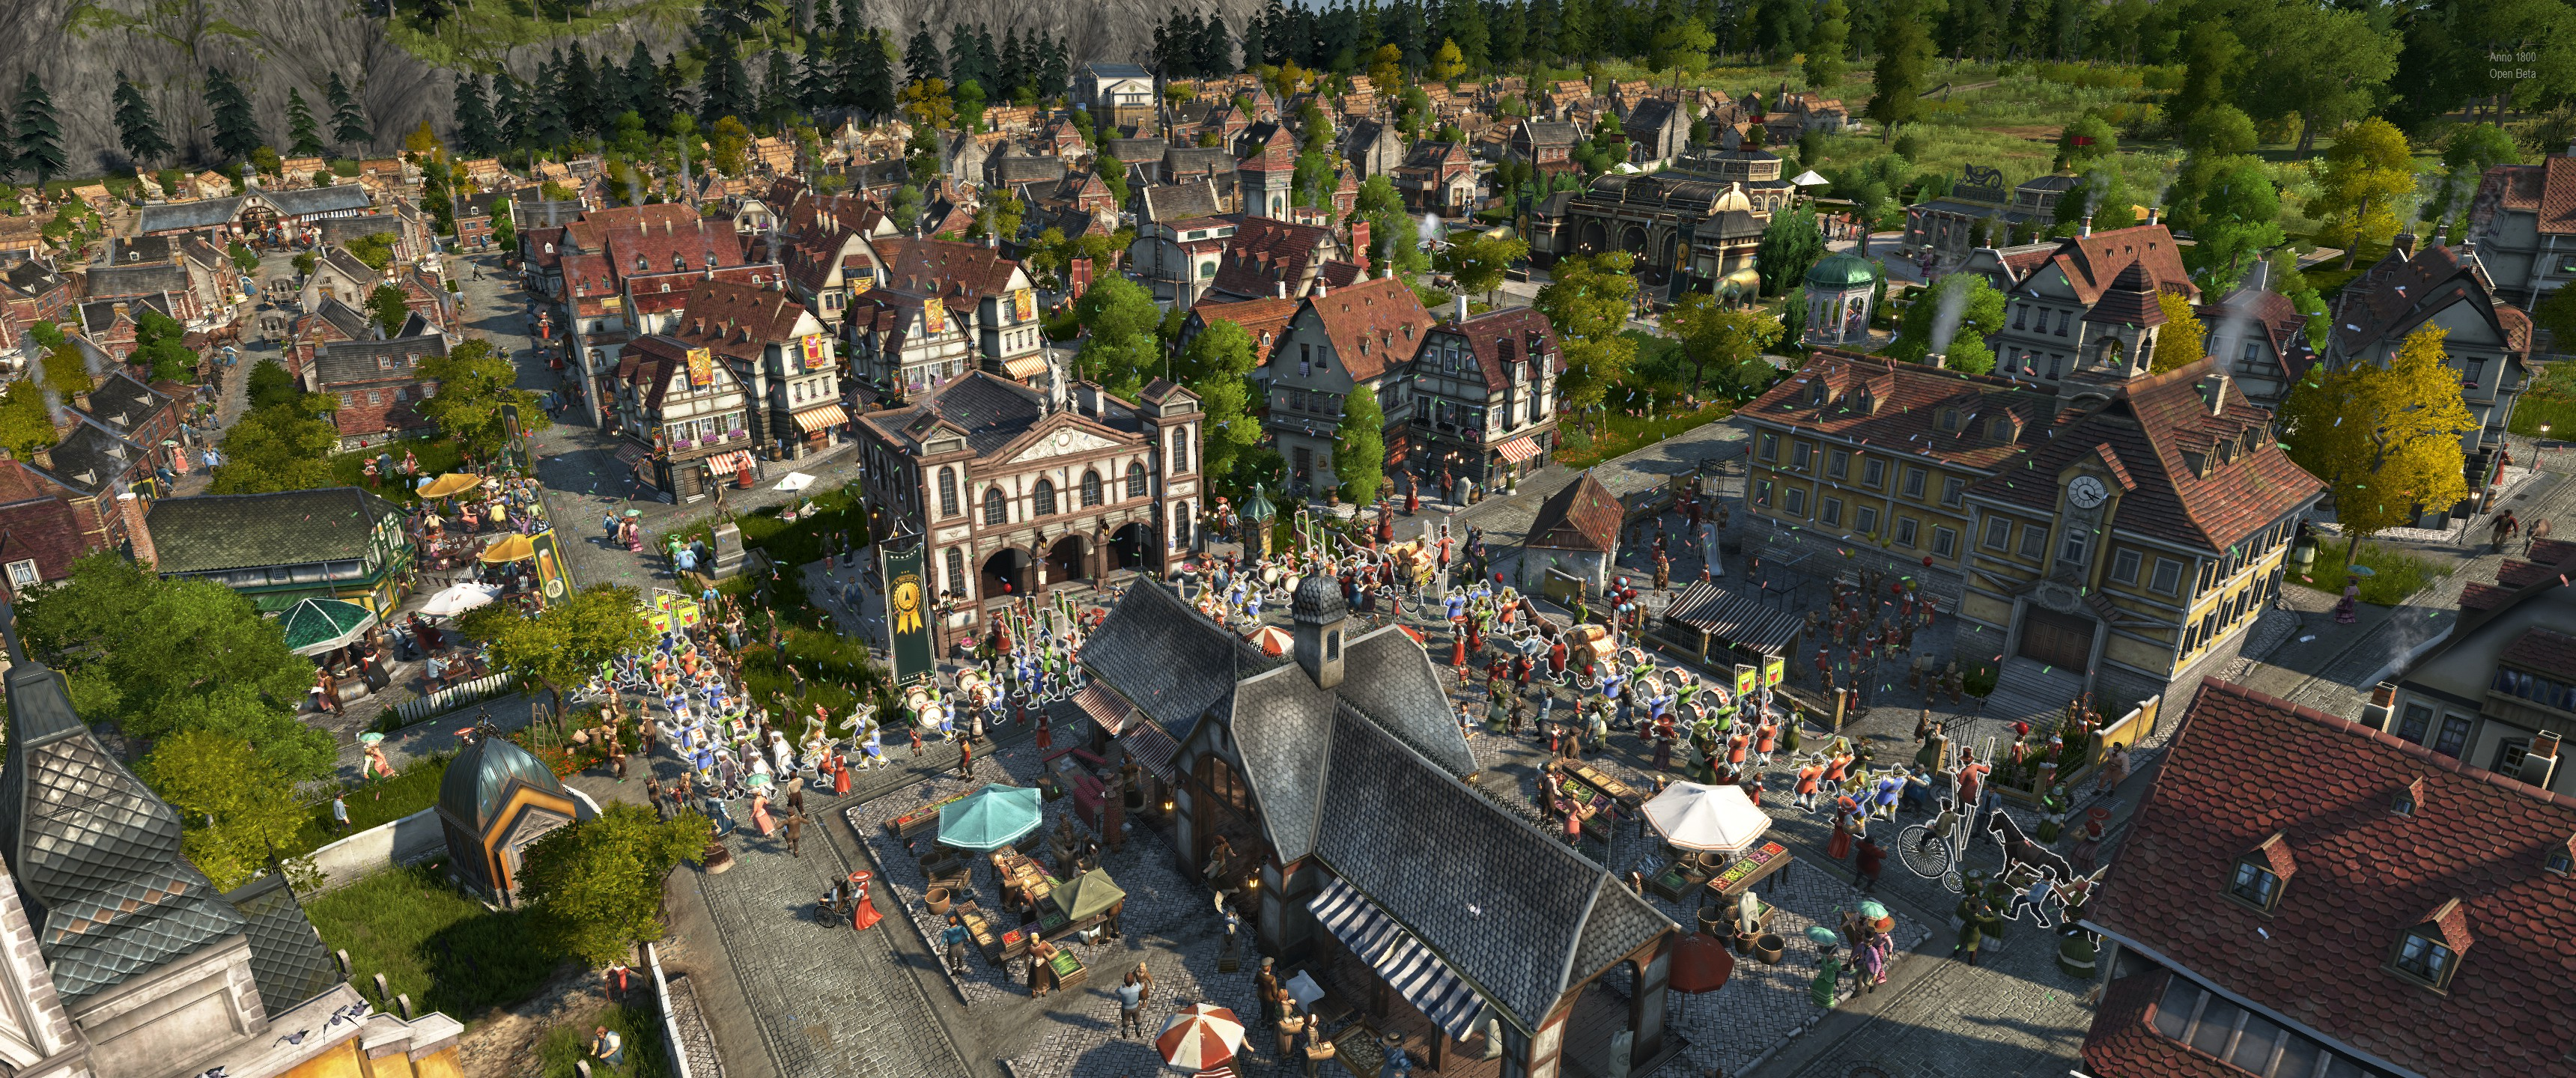 Anno-1800-Open-Beta2019-4-14-4-17-56